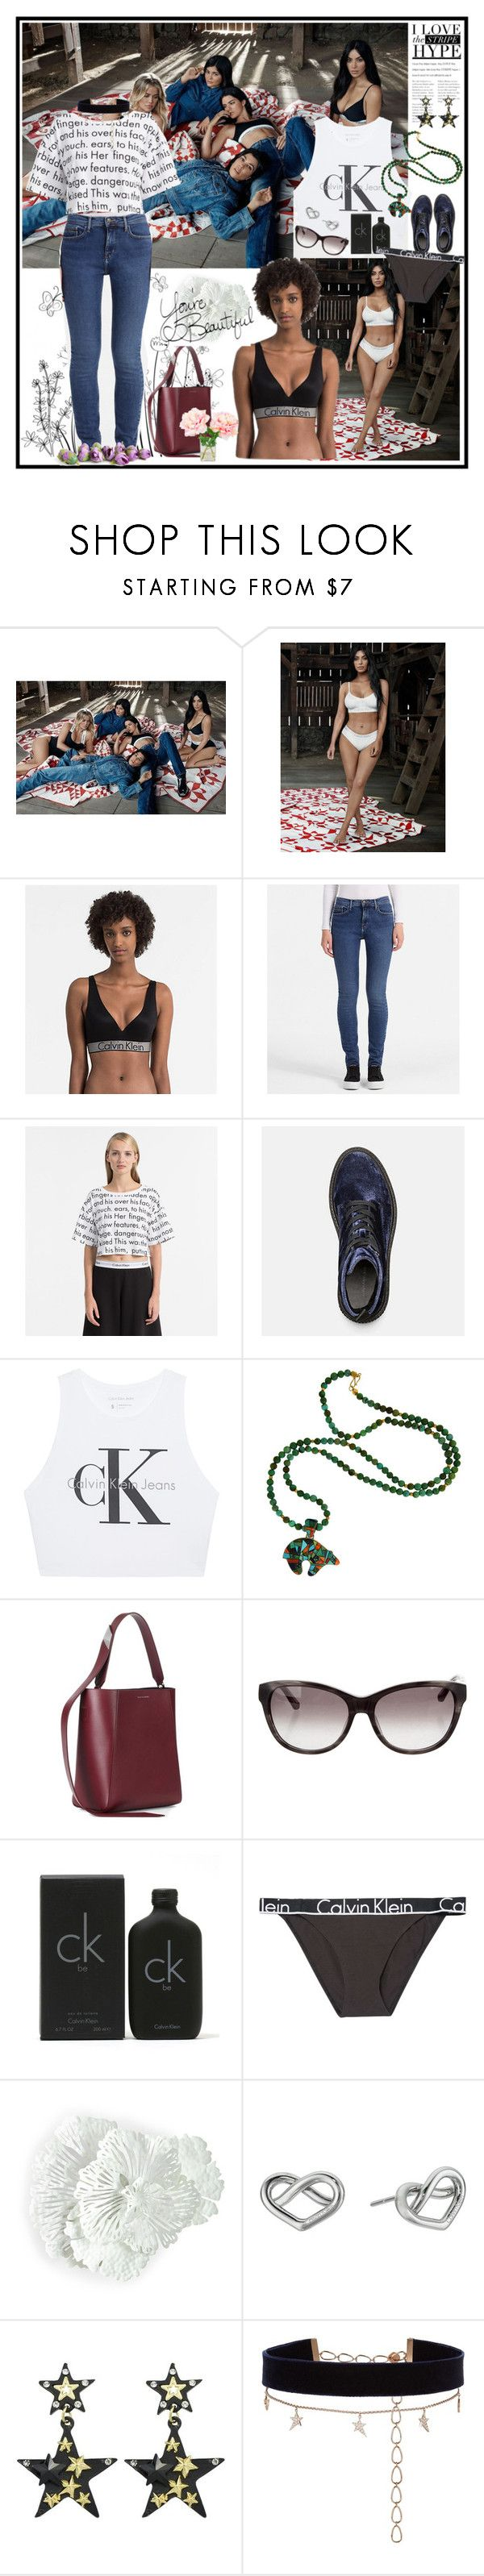 """""""Saturday with Calvin"""" by lizart ❤ liked on Polyvore featuring Calvin Klein Jeans, Calvin Klein 205W39NYC, Calvin Klein Collection, Calvin Klein, Calvin Klein Underwear, WALL, Diane Kordas, kendall, kendalljenner and Kylie"""